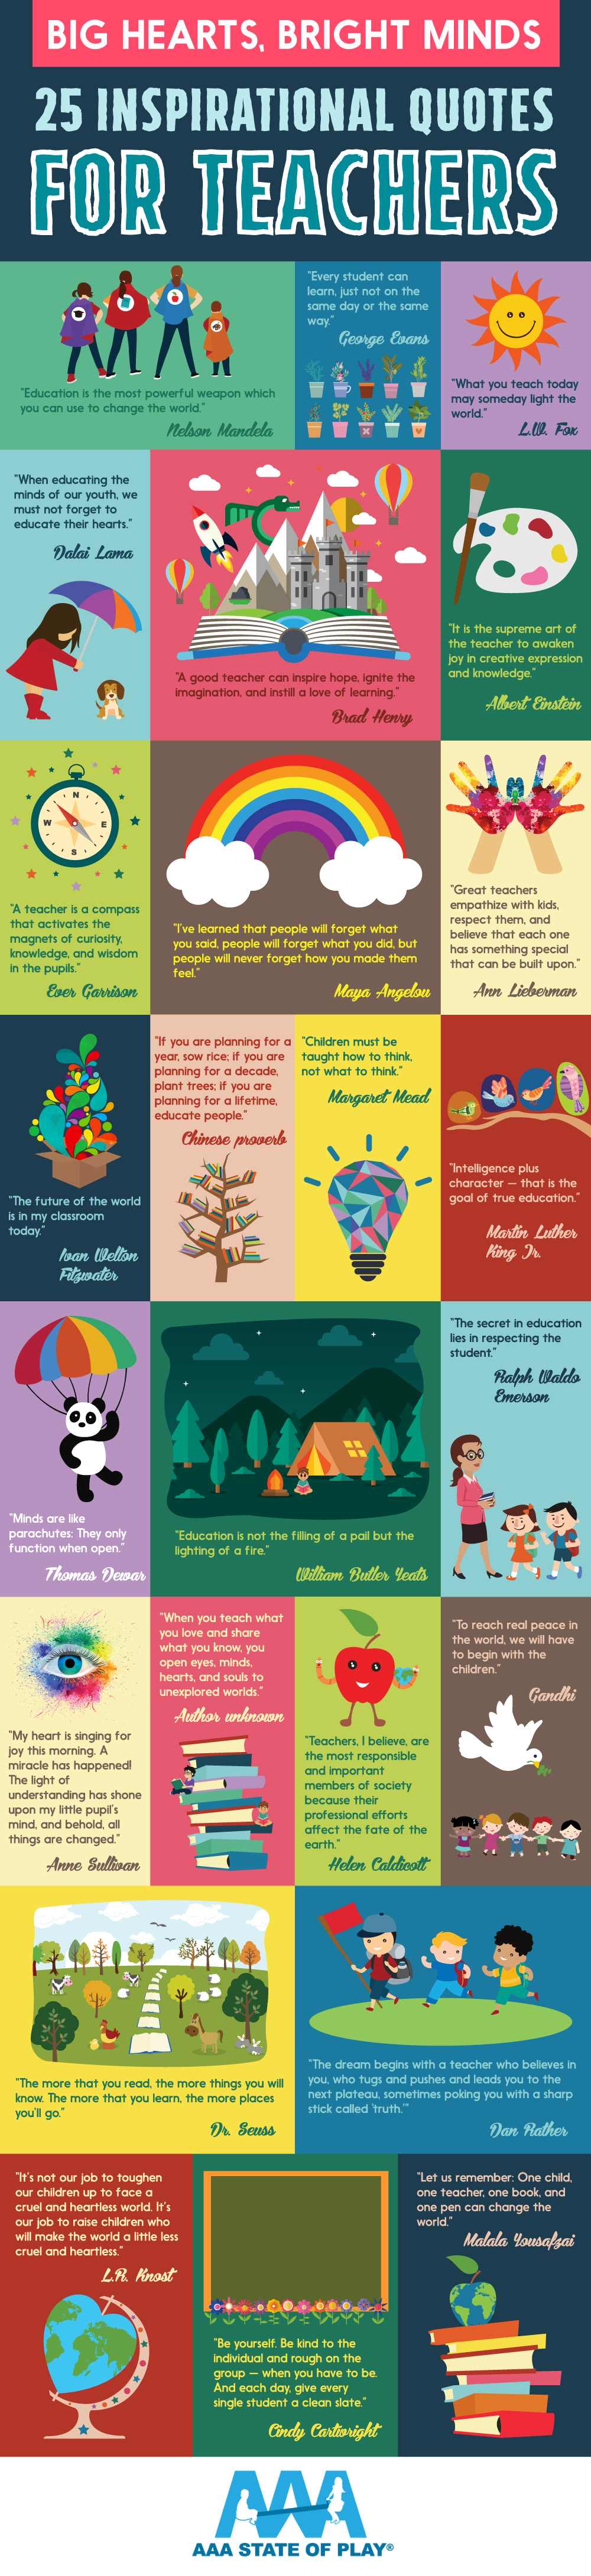 Big Hearts, Bright Minds: 25 Inspirational Quotes for Teachers - AAAStateofPlay.com - Infographic